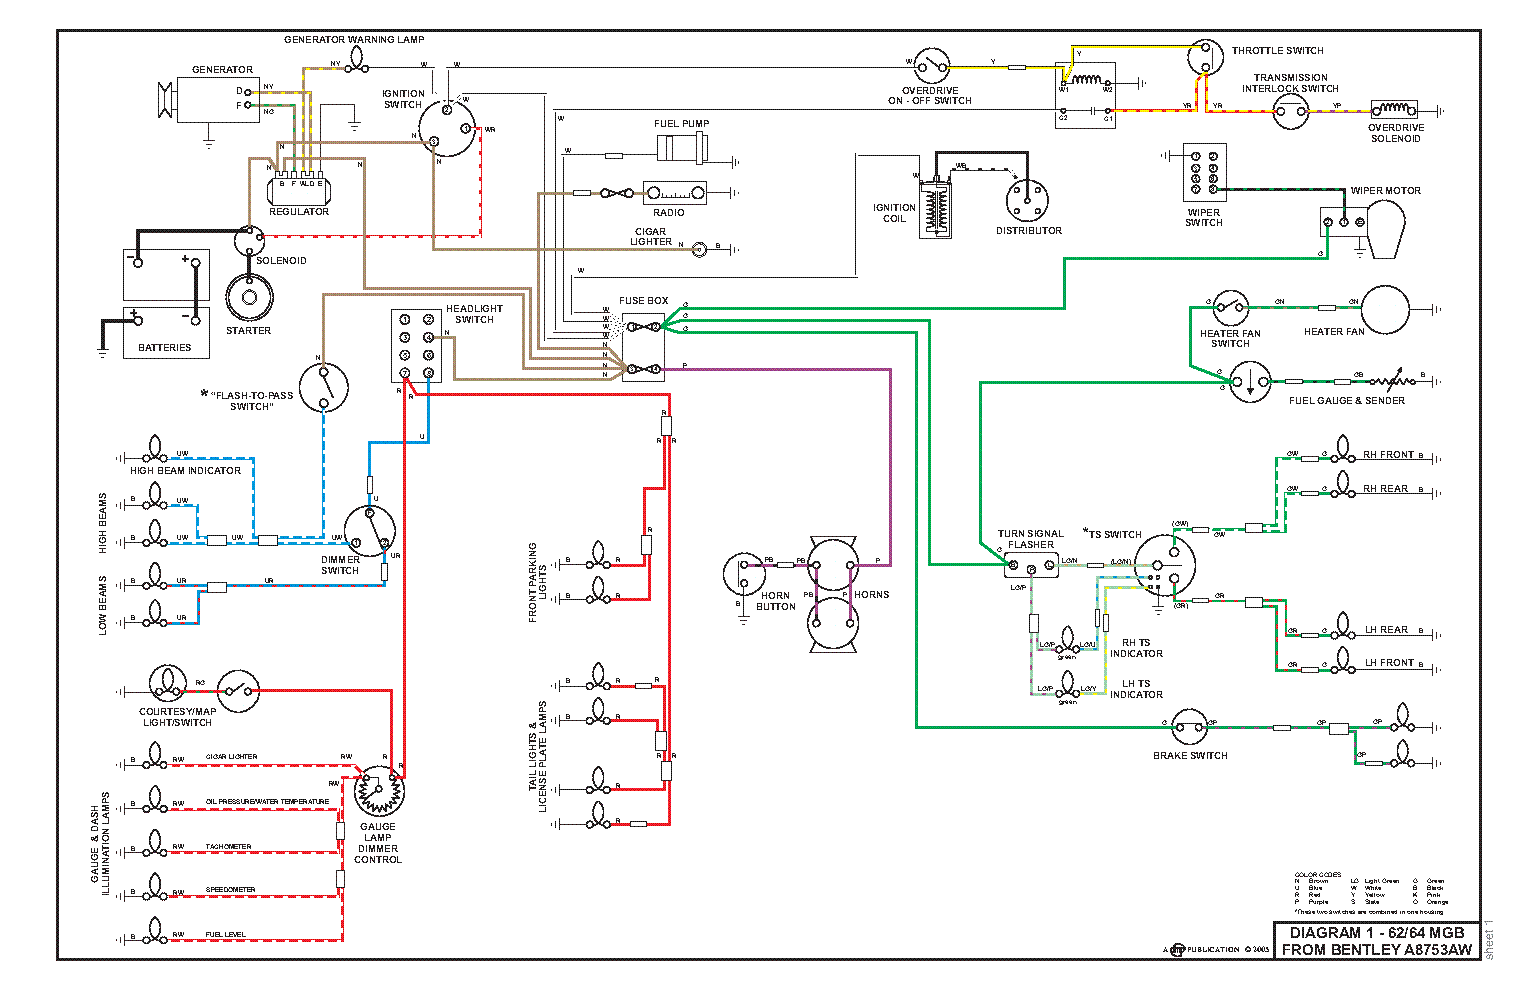 Incredible Wiring Diagrams For Bentley Today Diagram Data Schema Wiring Cloud Hisonuggs Outletorg